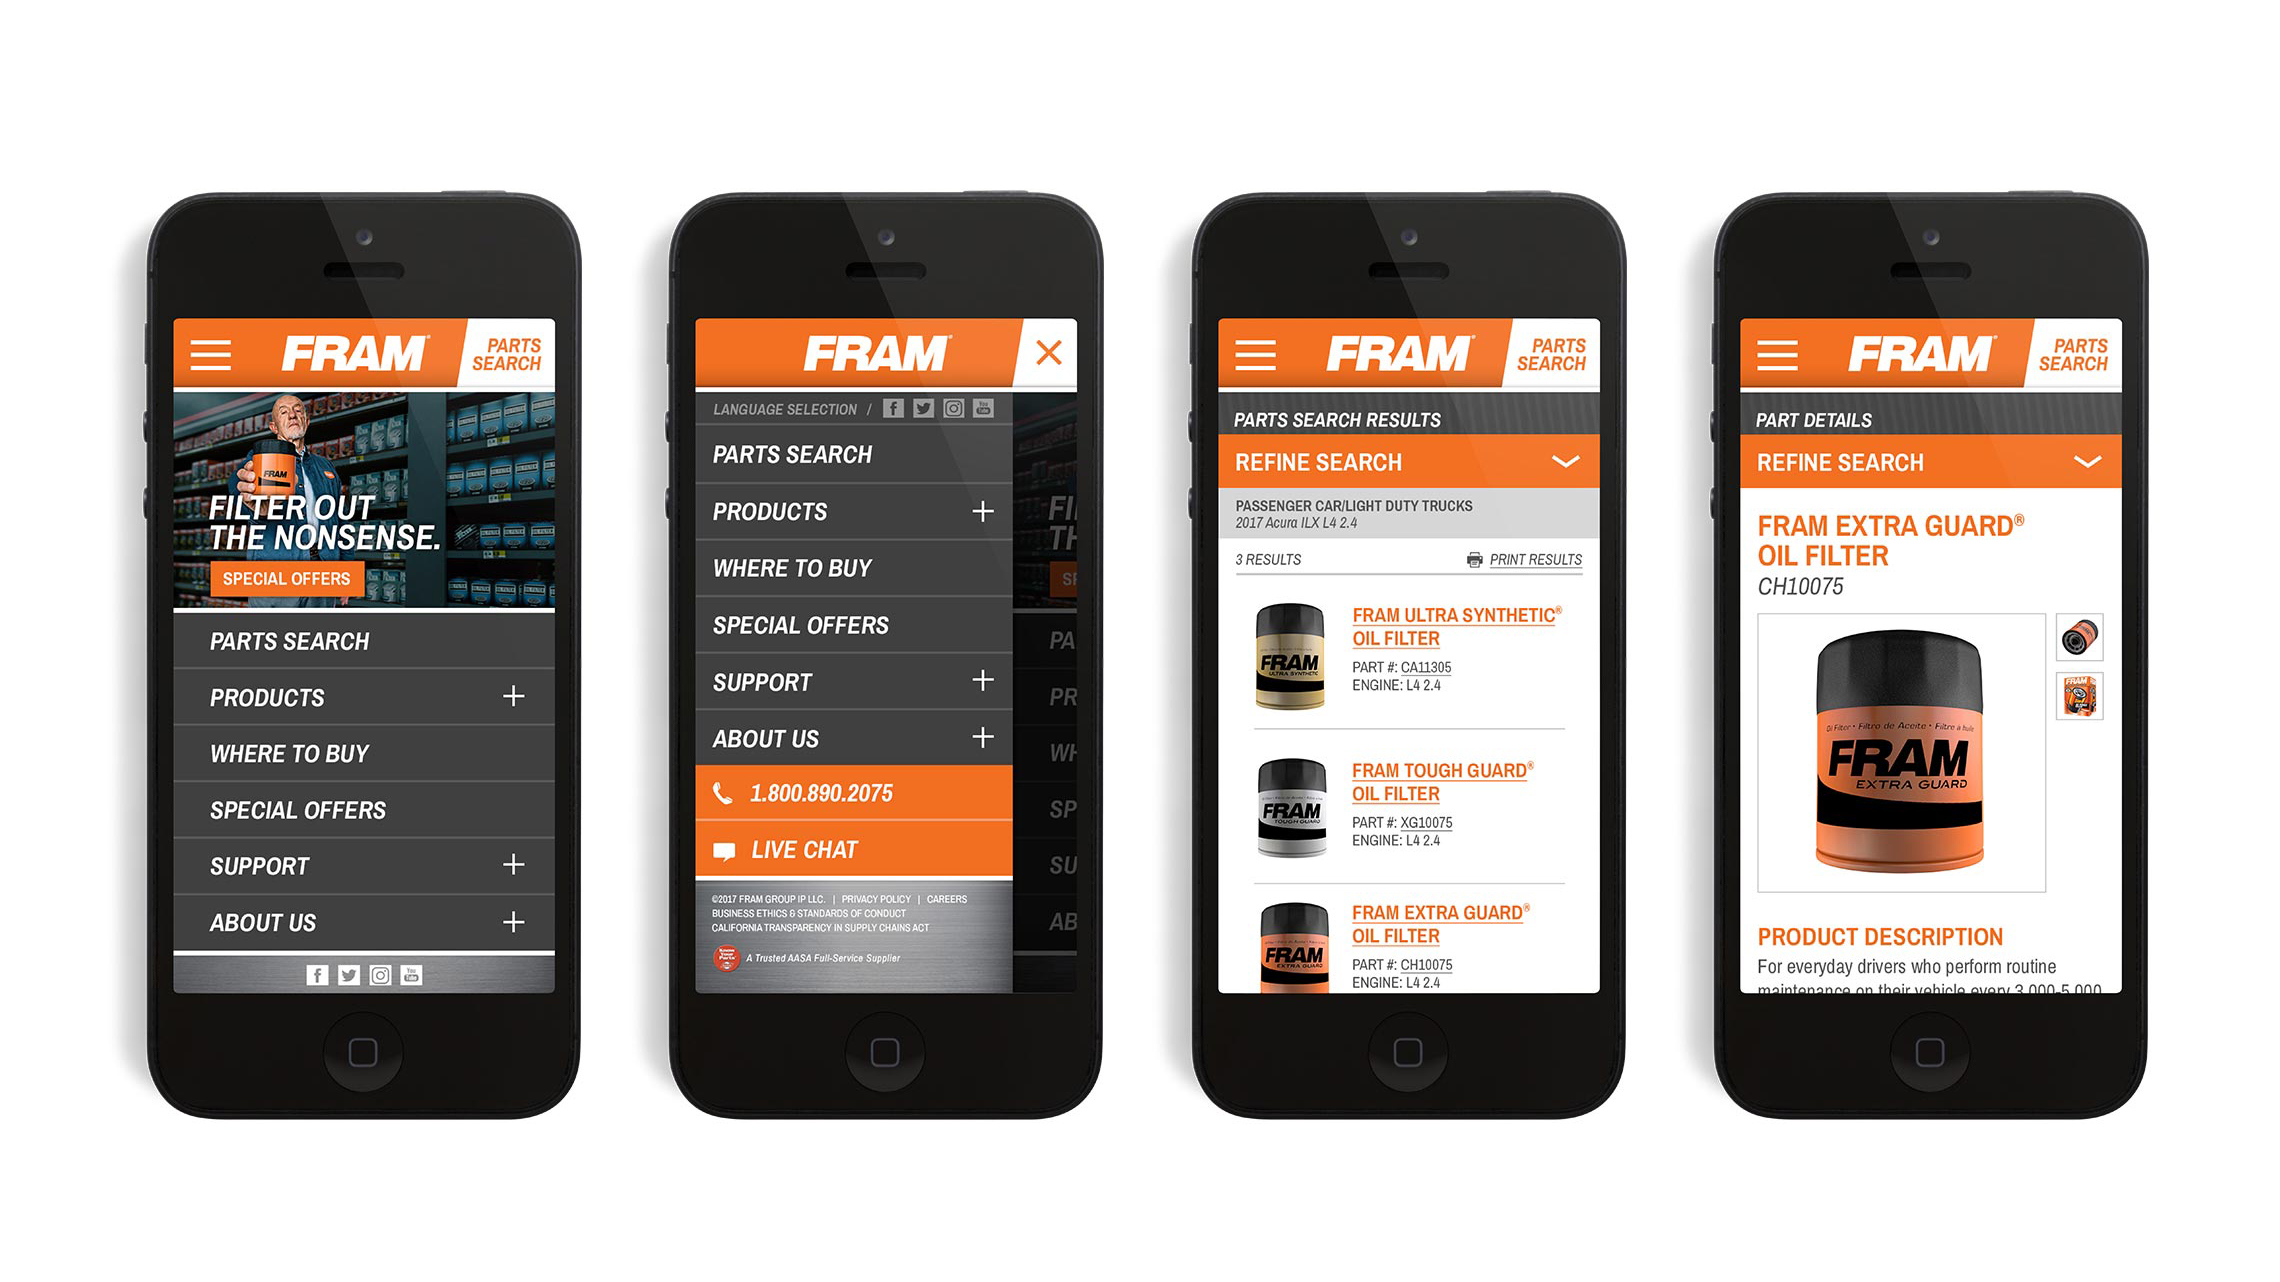 fram website image set 5